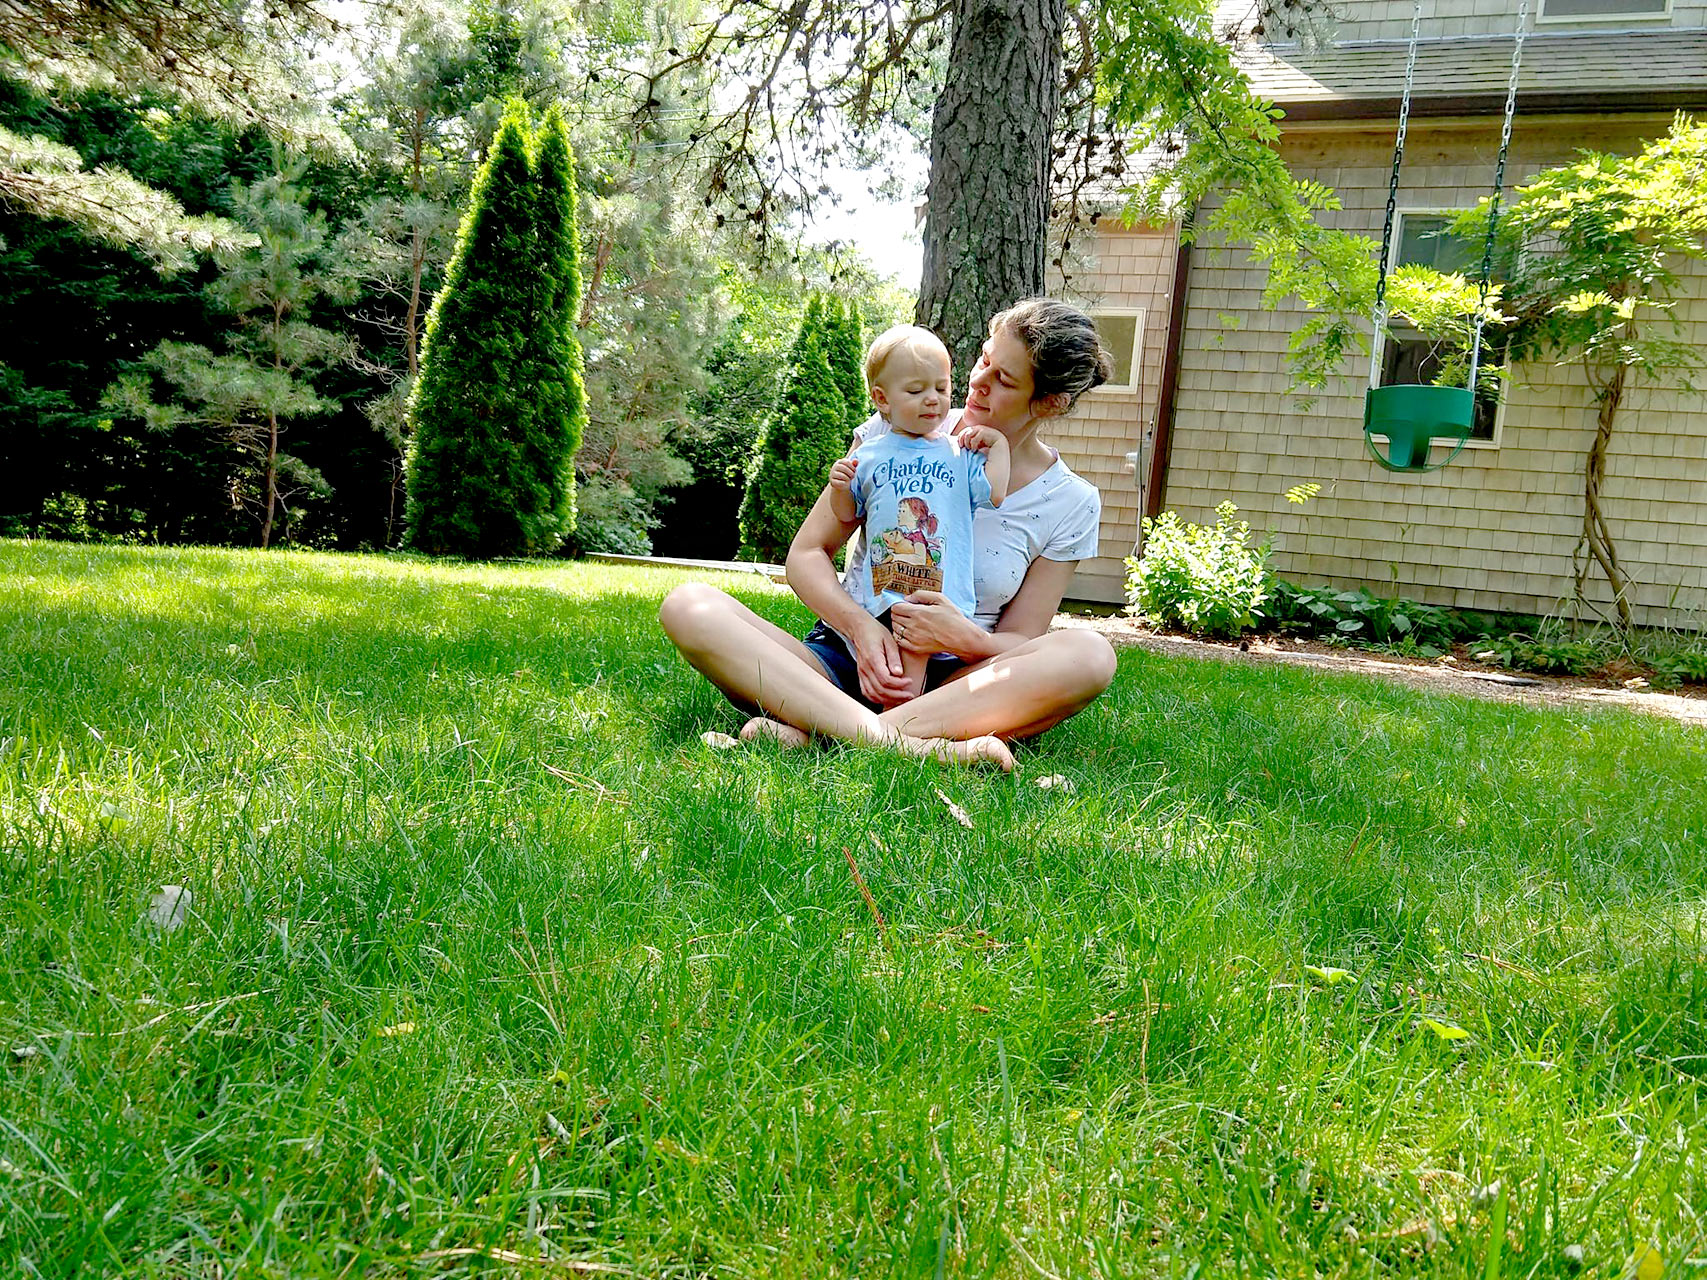 Woman in yard with child